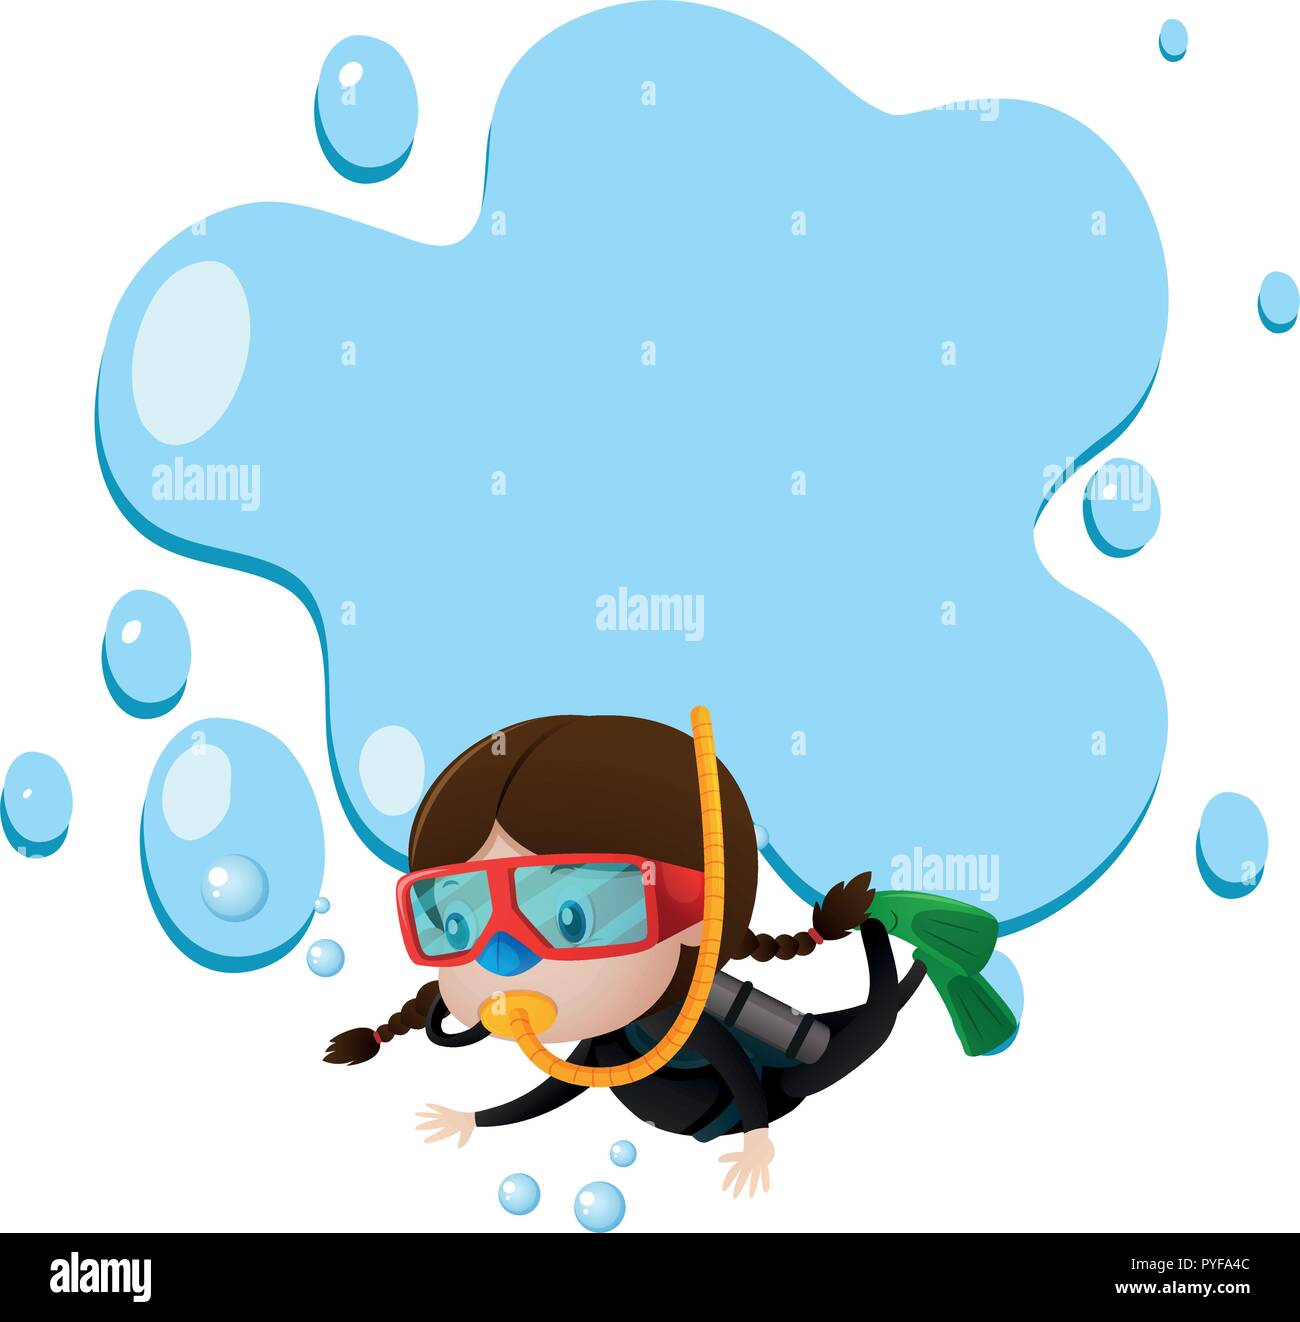 Border Template With Kid Scuba Diving Illustration